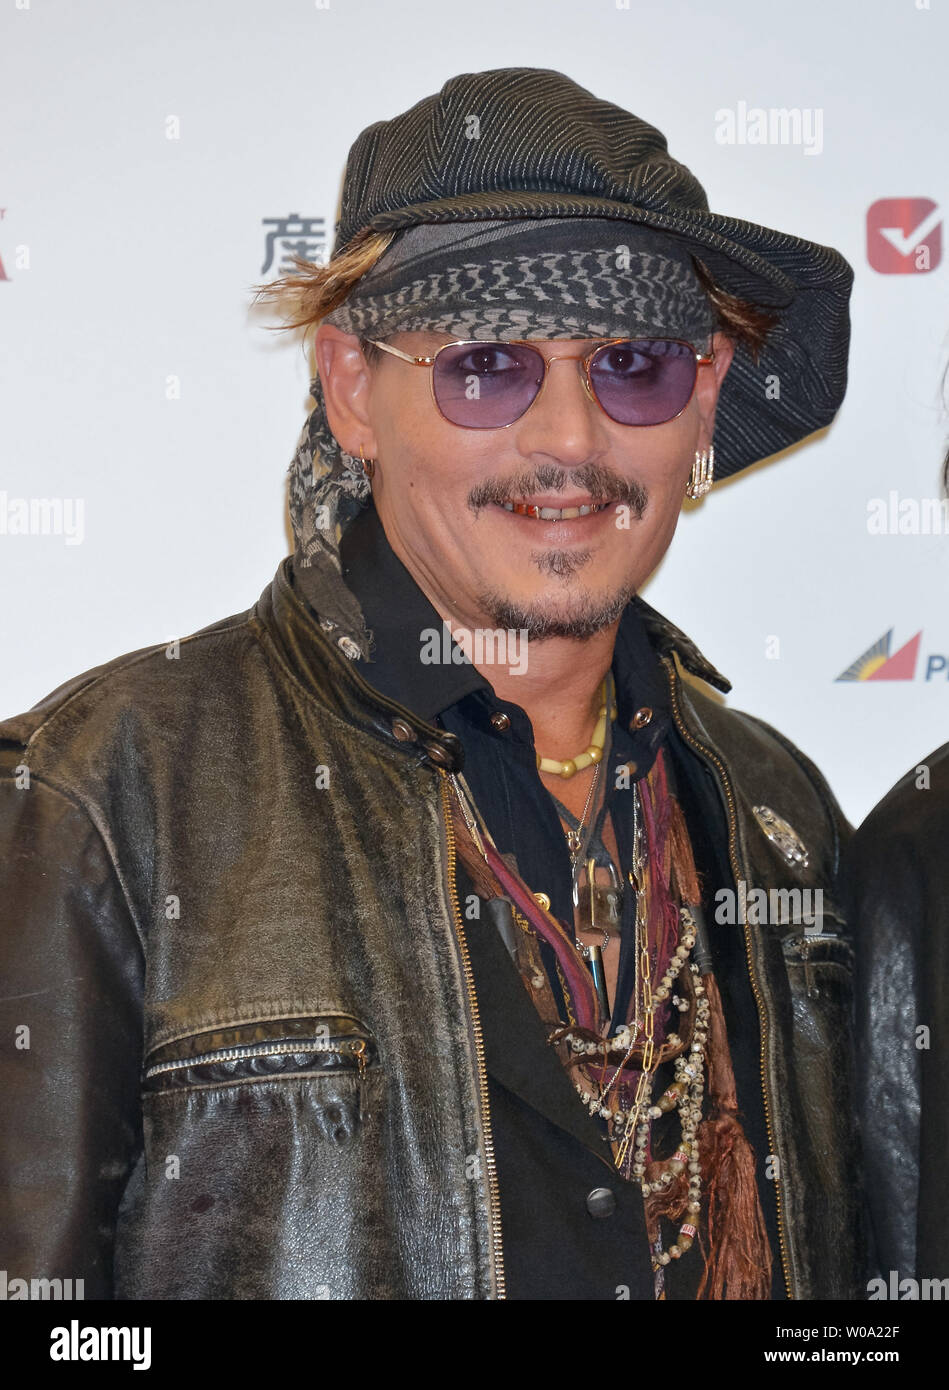 695d2275a9ef Actor Johnny Depp arrives on the red carpet for the 'Classic Rock Awards  2016'